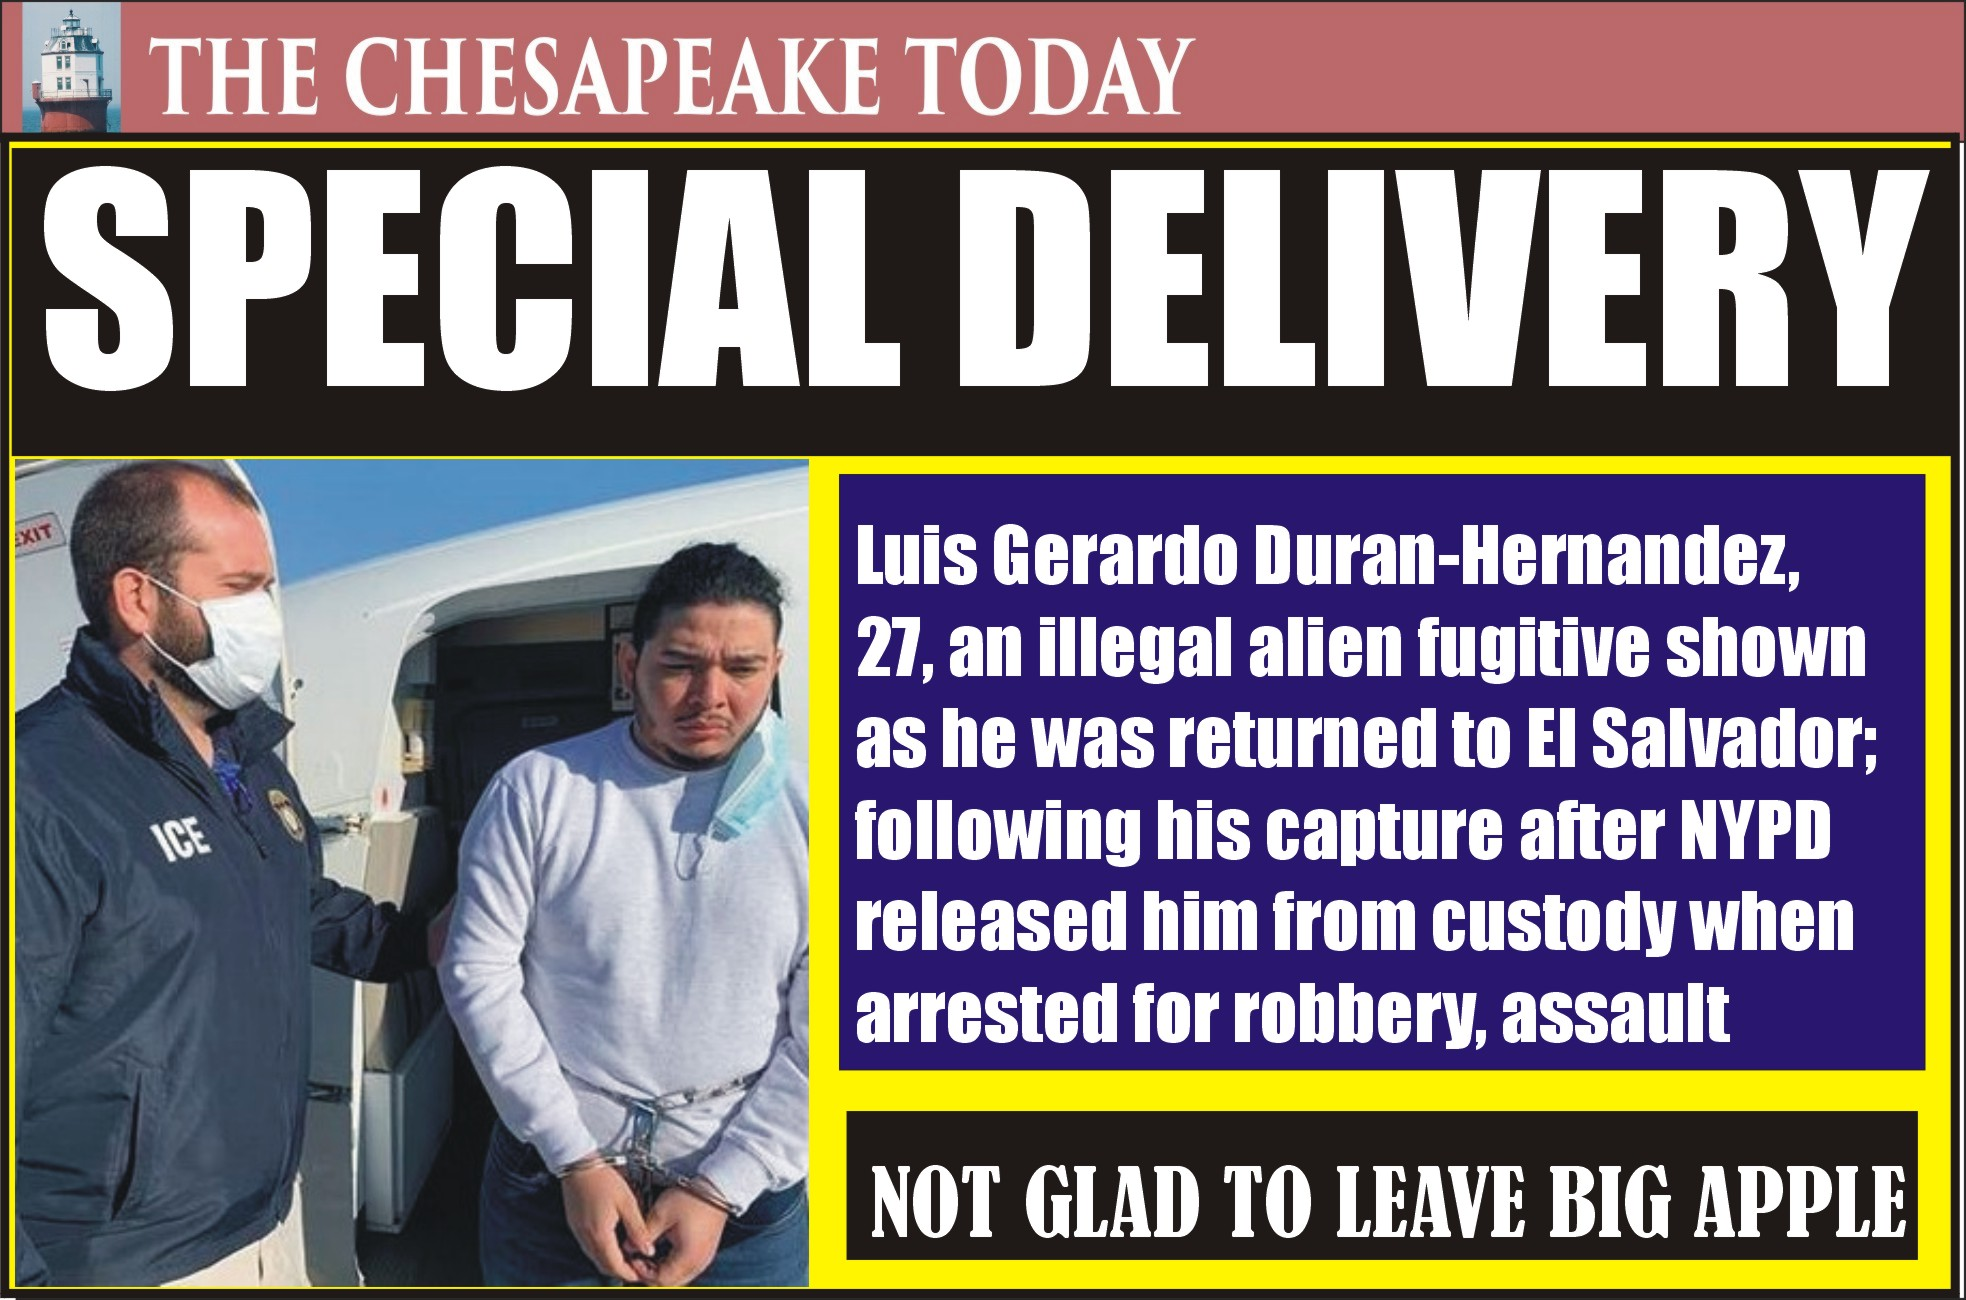 ILLEGAL ALIEN: NYPD released Luis Gerardo Duran-Hernandez after robbery arrest instead of honoring ICE detainer; now he is deported back to El Salvador